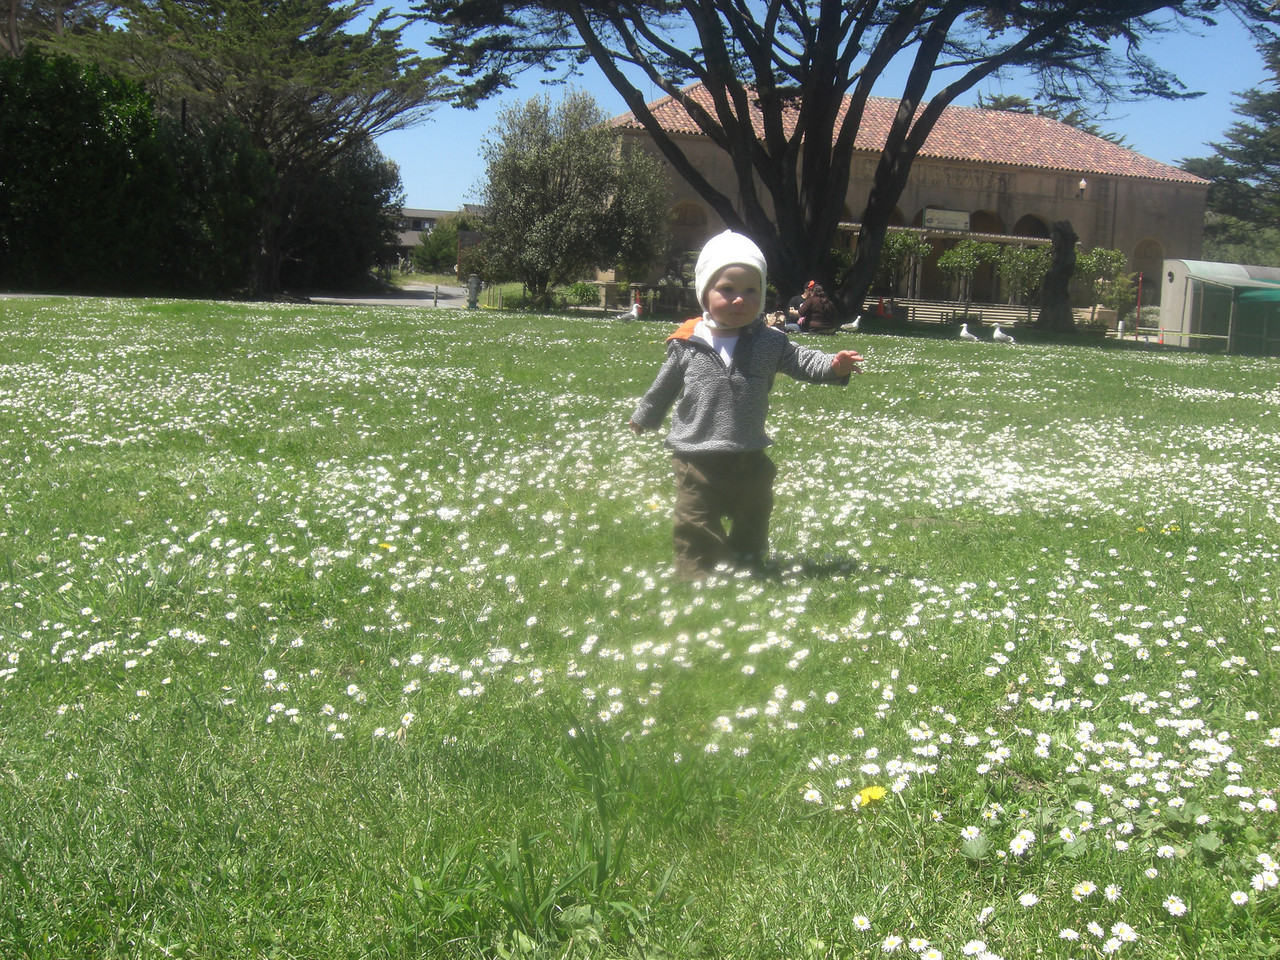 The field of daisies at the San Francisco Zoo